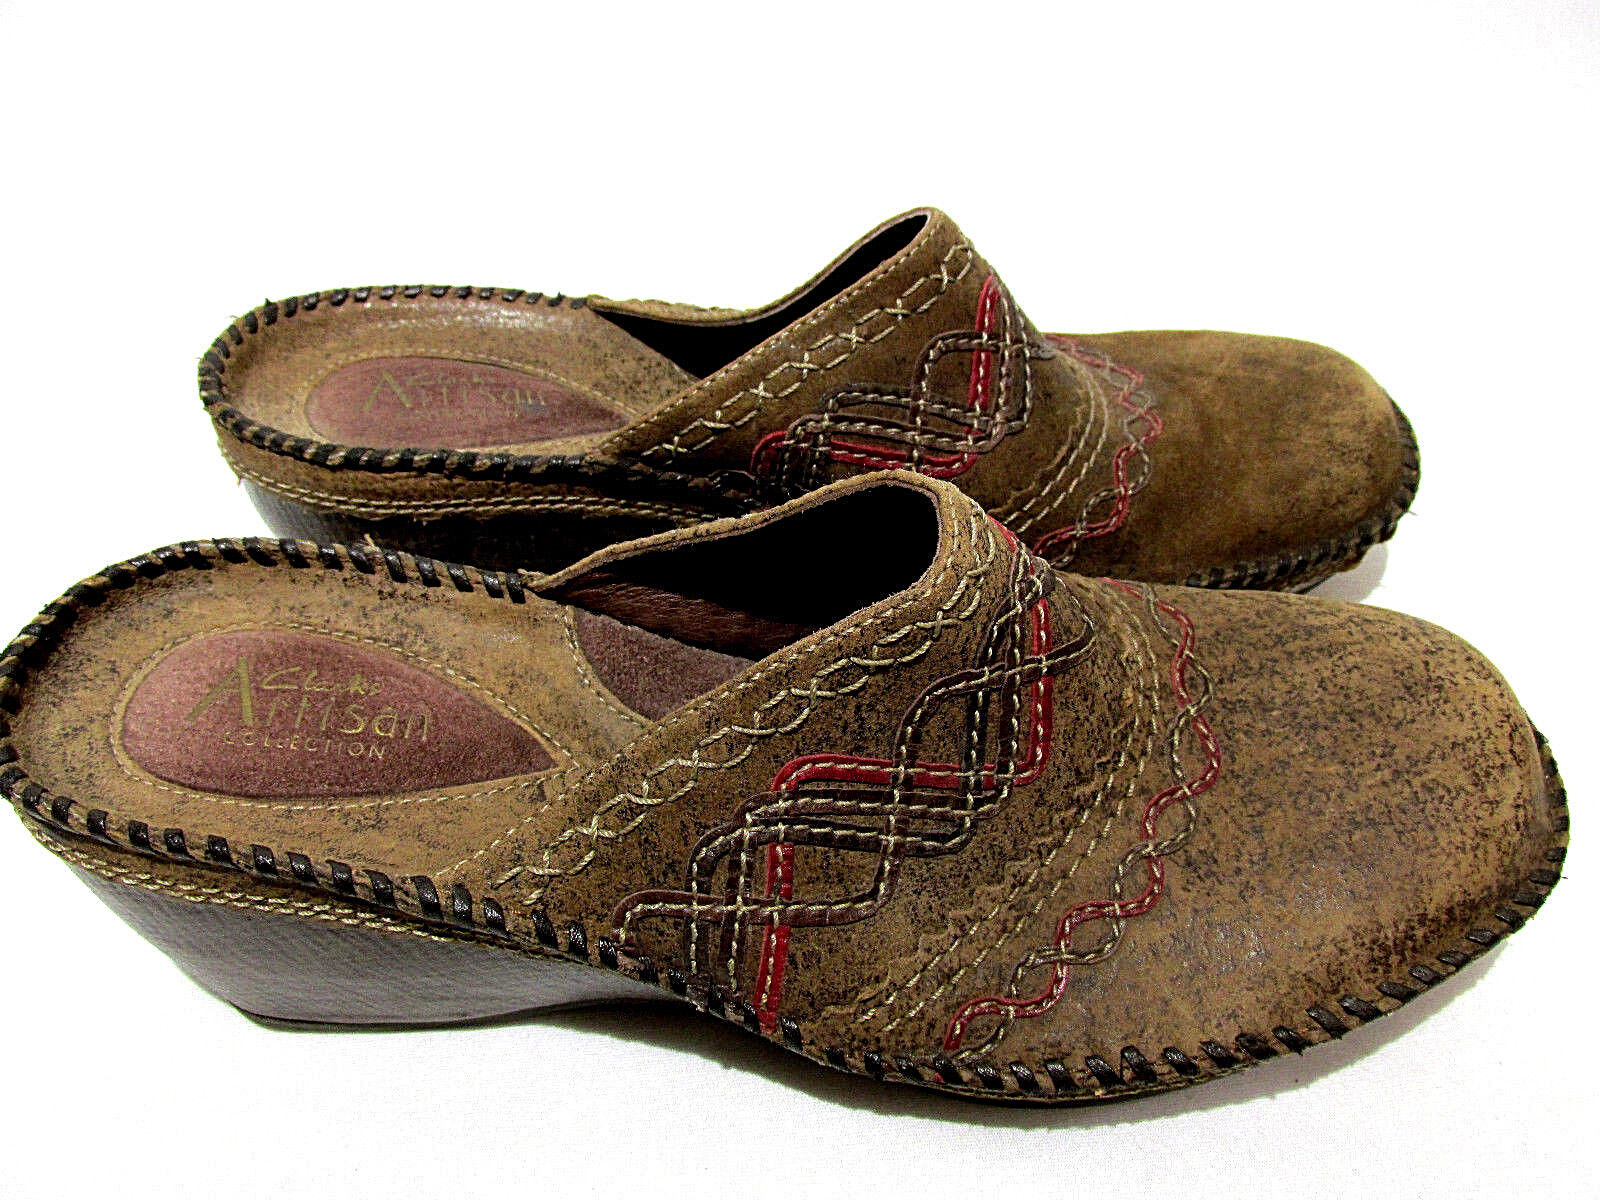 Details about Clarks ARTISAN Collection Womens Size 9M Brown Leather Mule Wedge Clogs